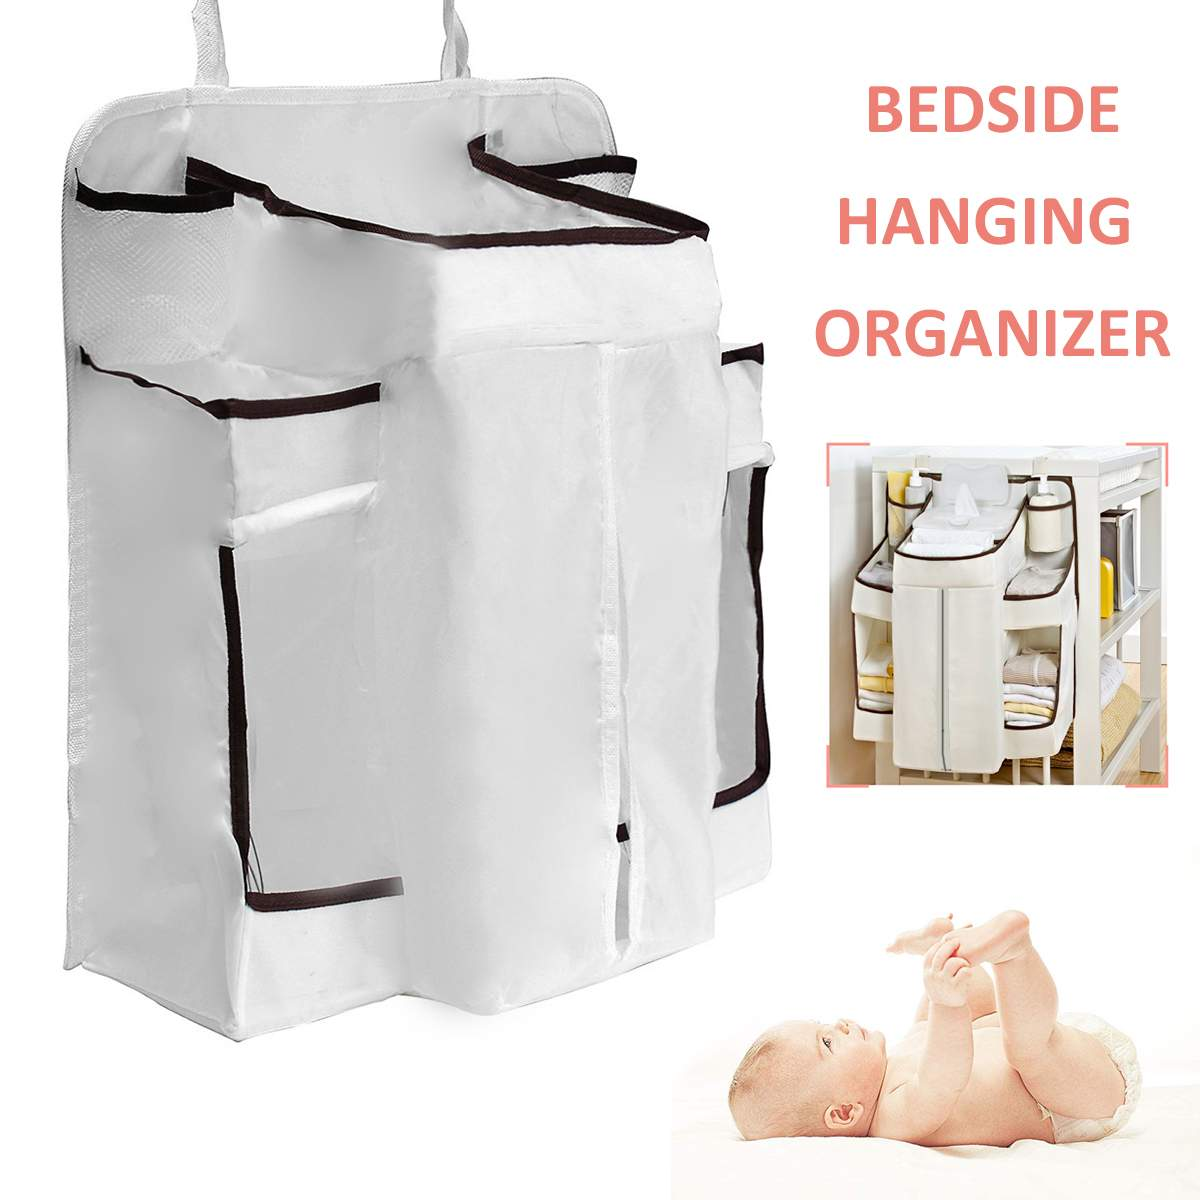 Multifunctional Baby Nappy Change Organizer Crib Bedside Hanging Bag Stroller Bed Storage Clothes Storage Dispenser Pouch garment bag